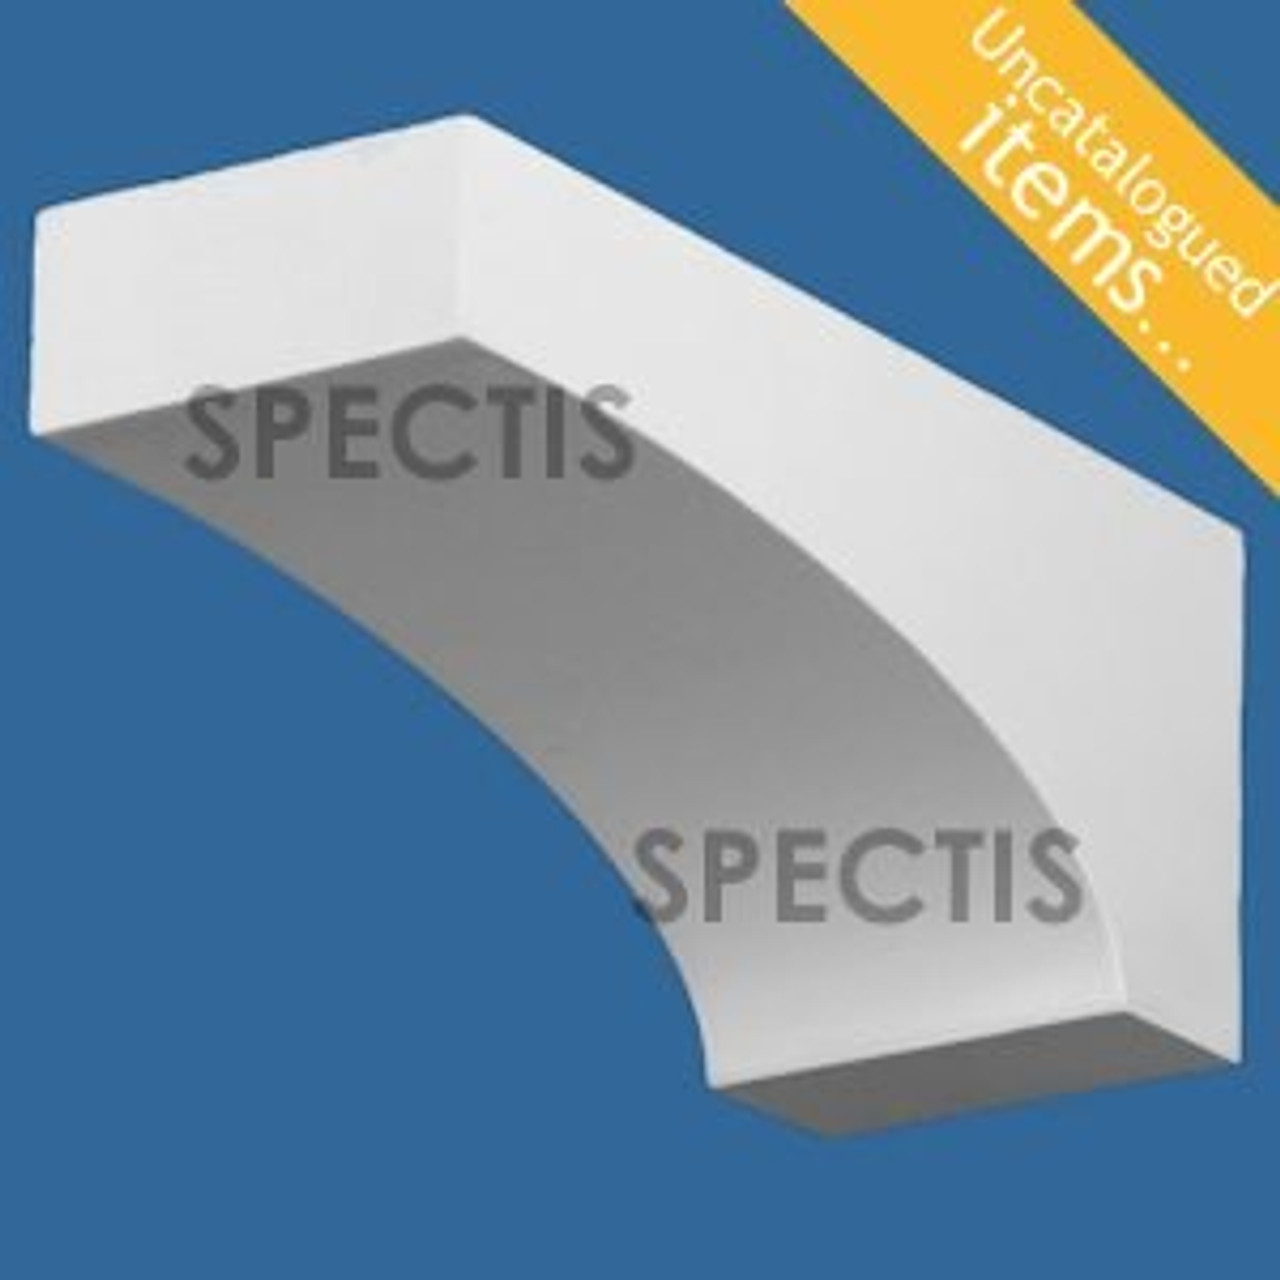 """BL3014 Spectis Eave Block or Bracket 3.5""""W x 4""""H x 9.25"""" Projection"""